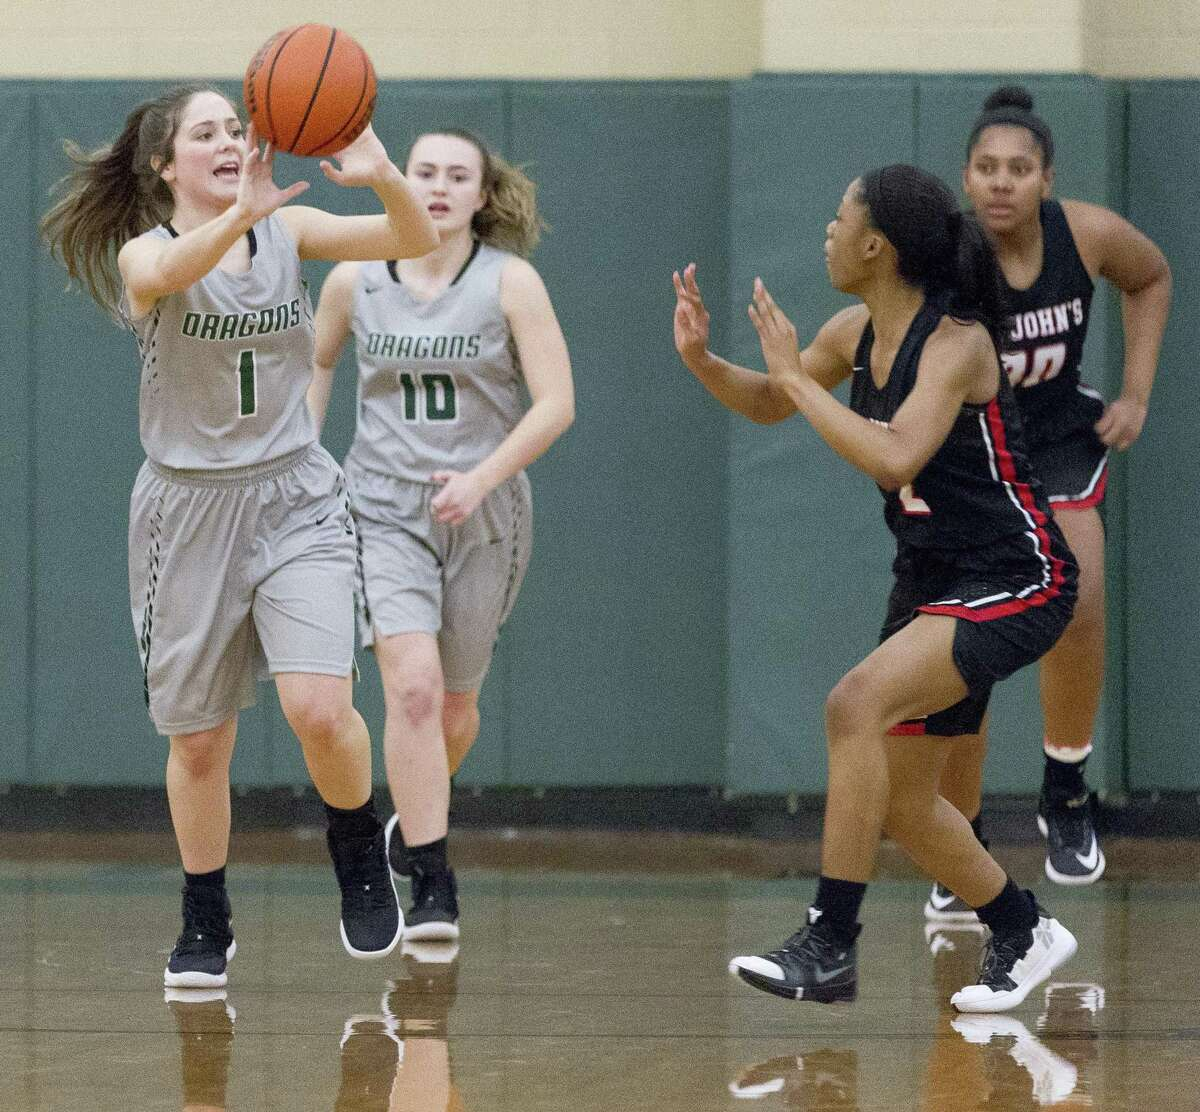 John Cooper guard Abby Monsanto (1) makes a pass during the first quarter of a Southwest Preparatory Conference high school basketball game at The John Cooper School, Friday, Jan. 11, 2019, in The Woodlands.